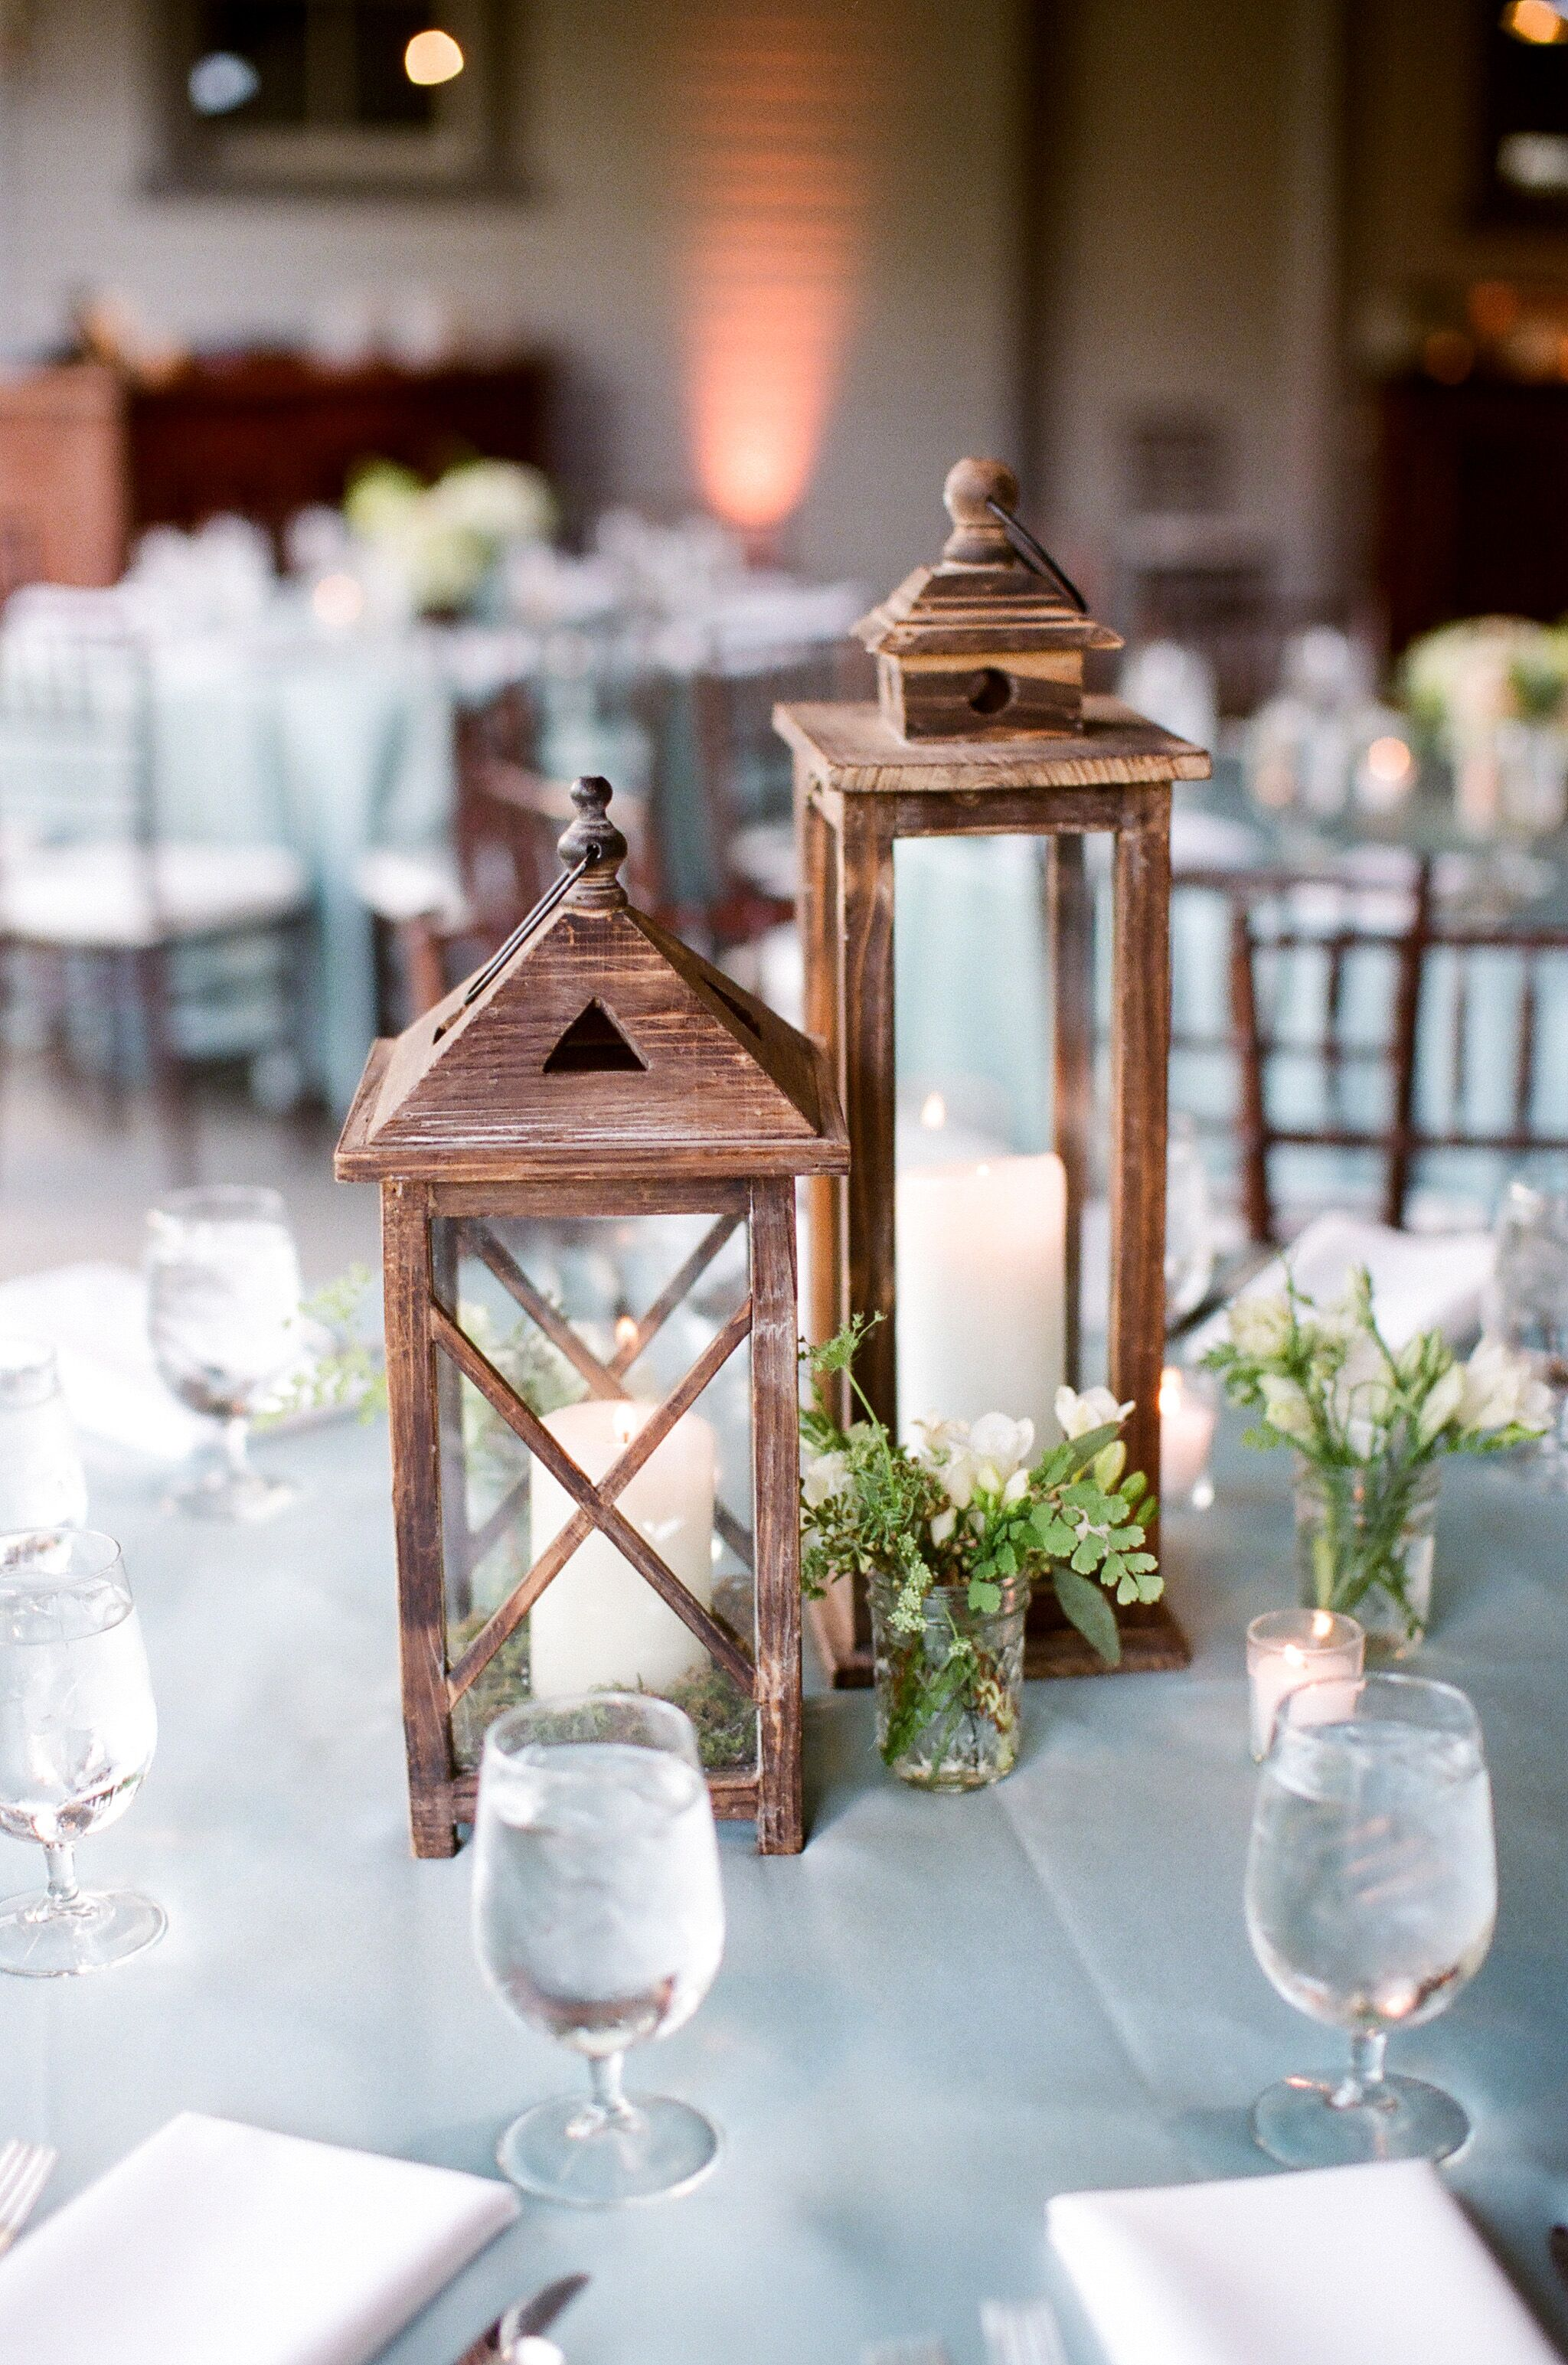 Cornflower blue tables with lantern centerpieces